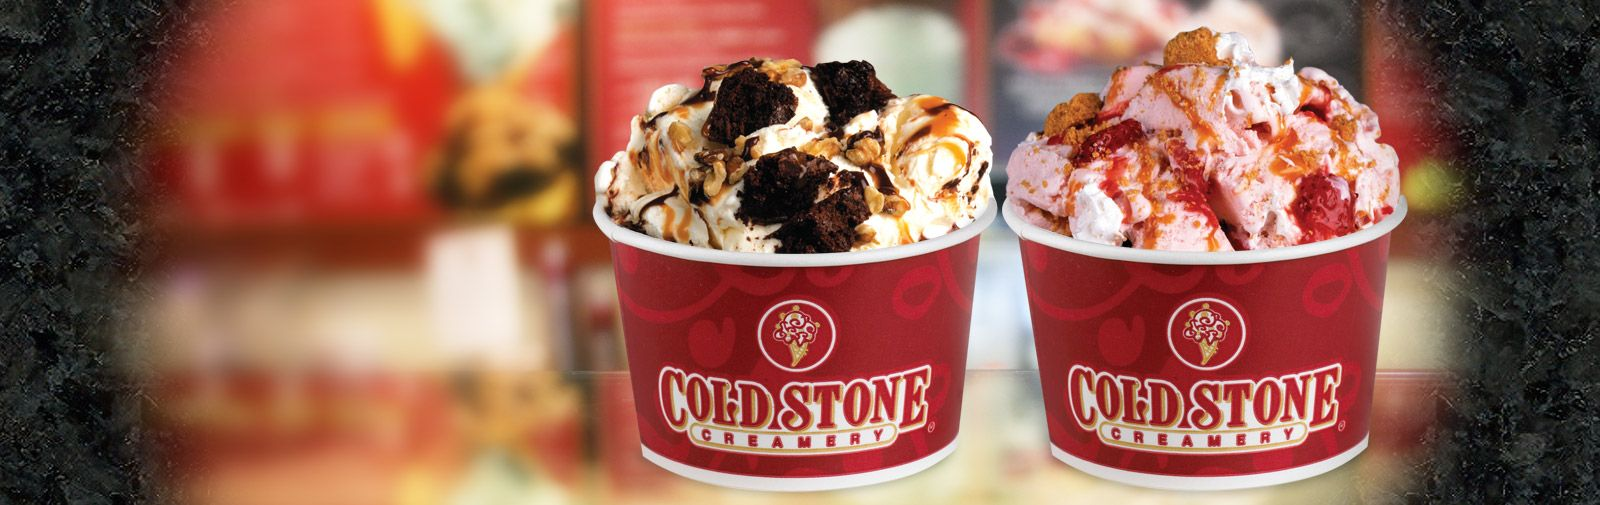 Cold stone creamery join the for free stuff and